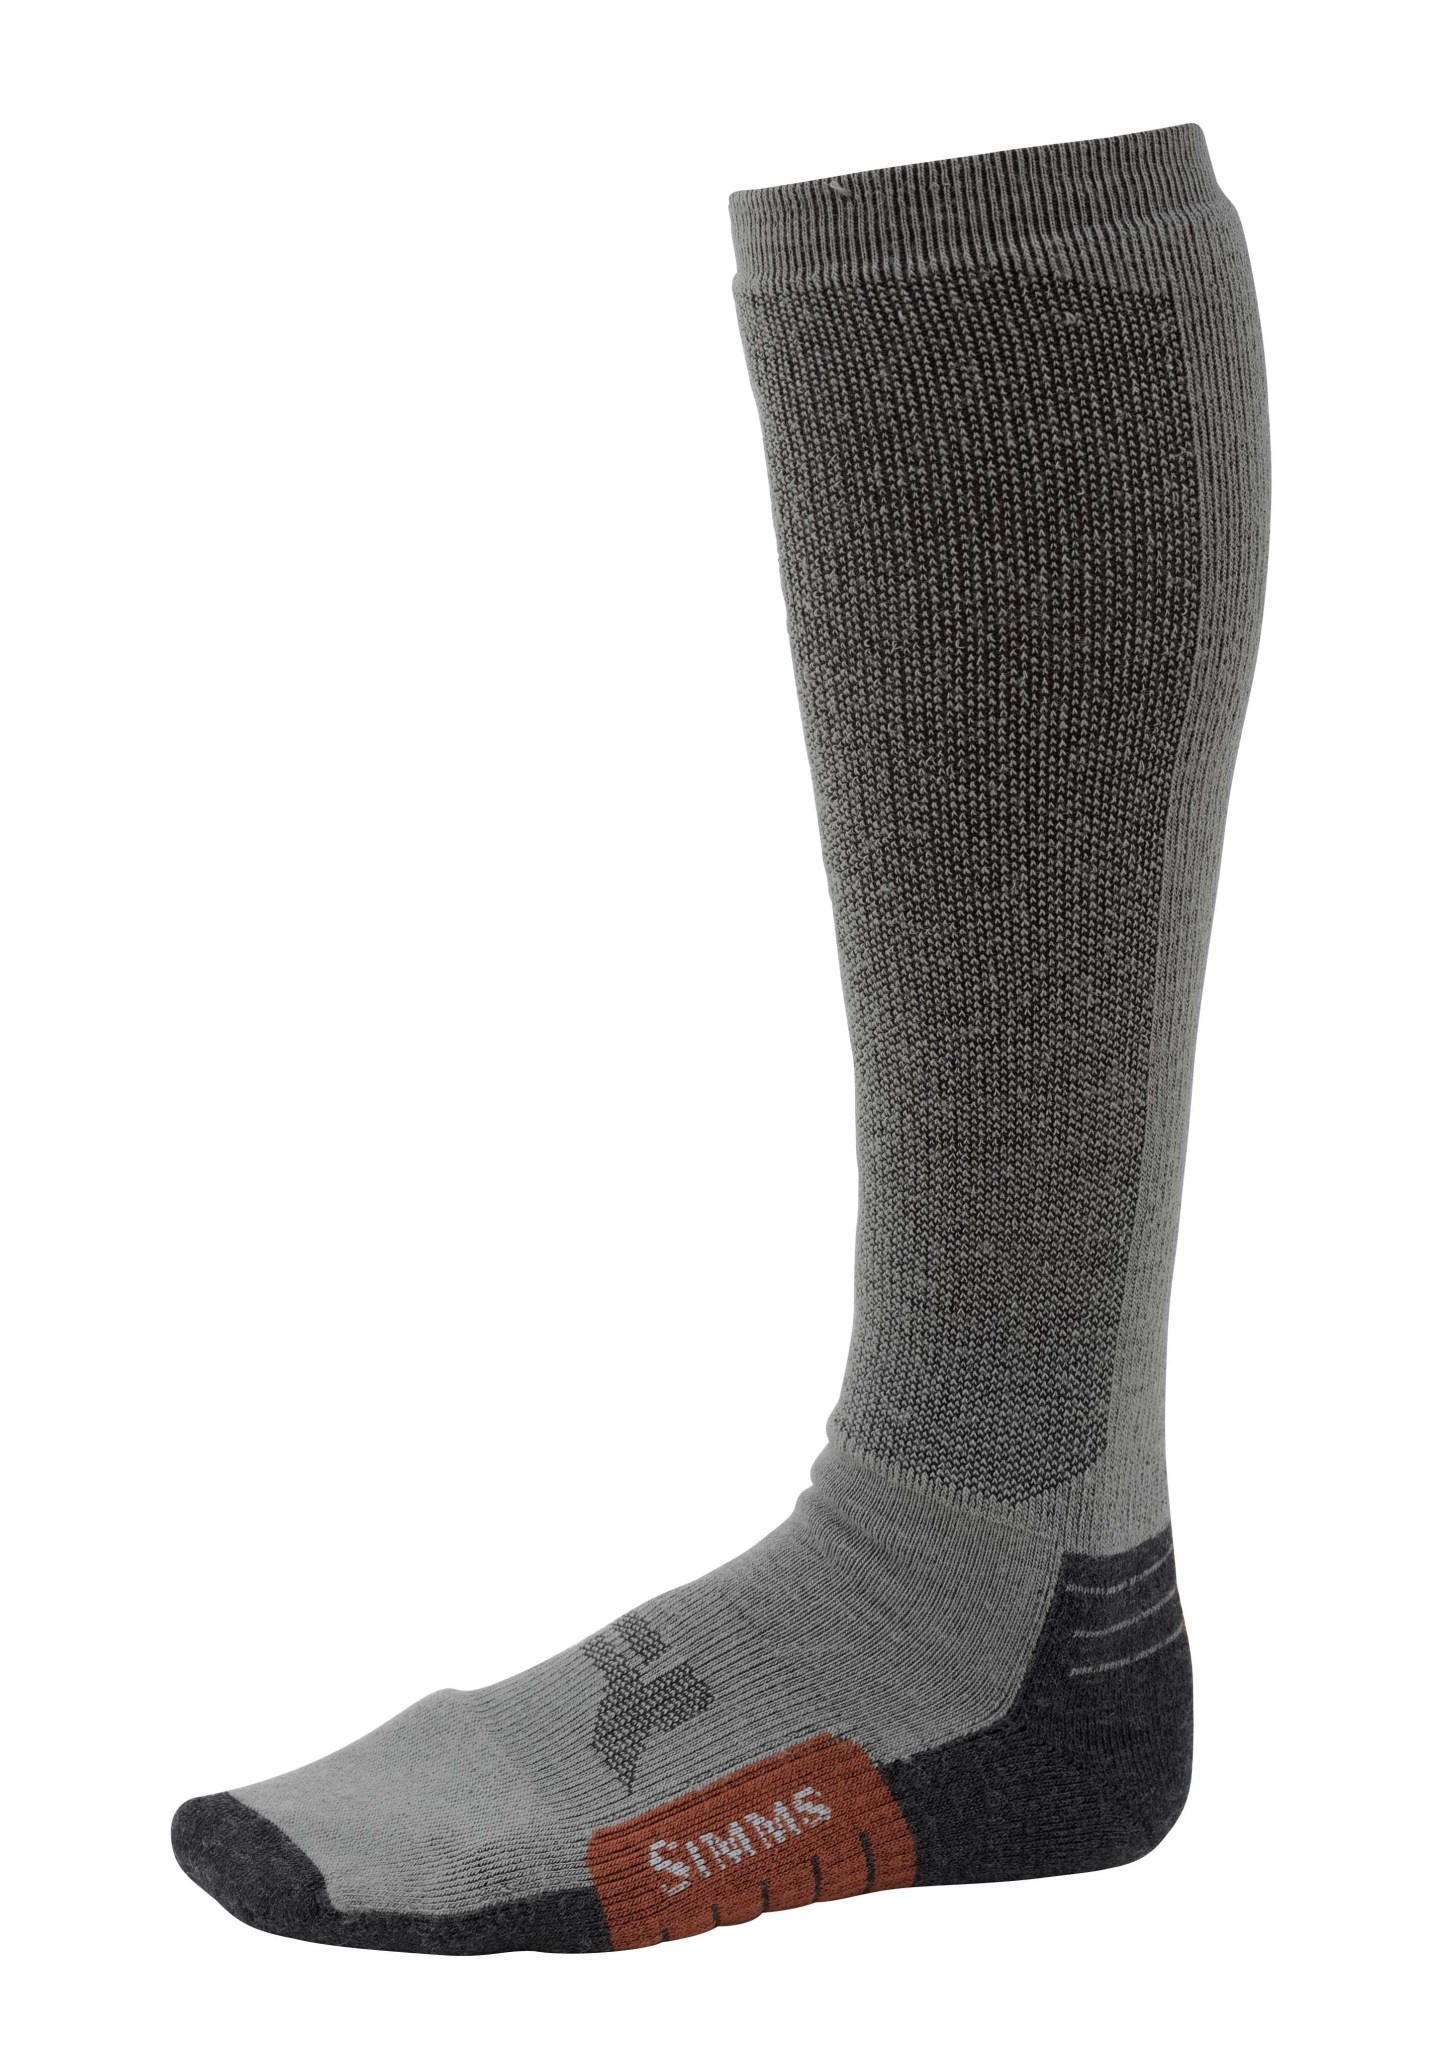 Simms Simms Guide Midweight Wading Sock - 30% OFF SALE